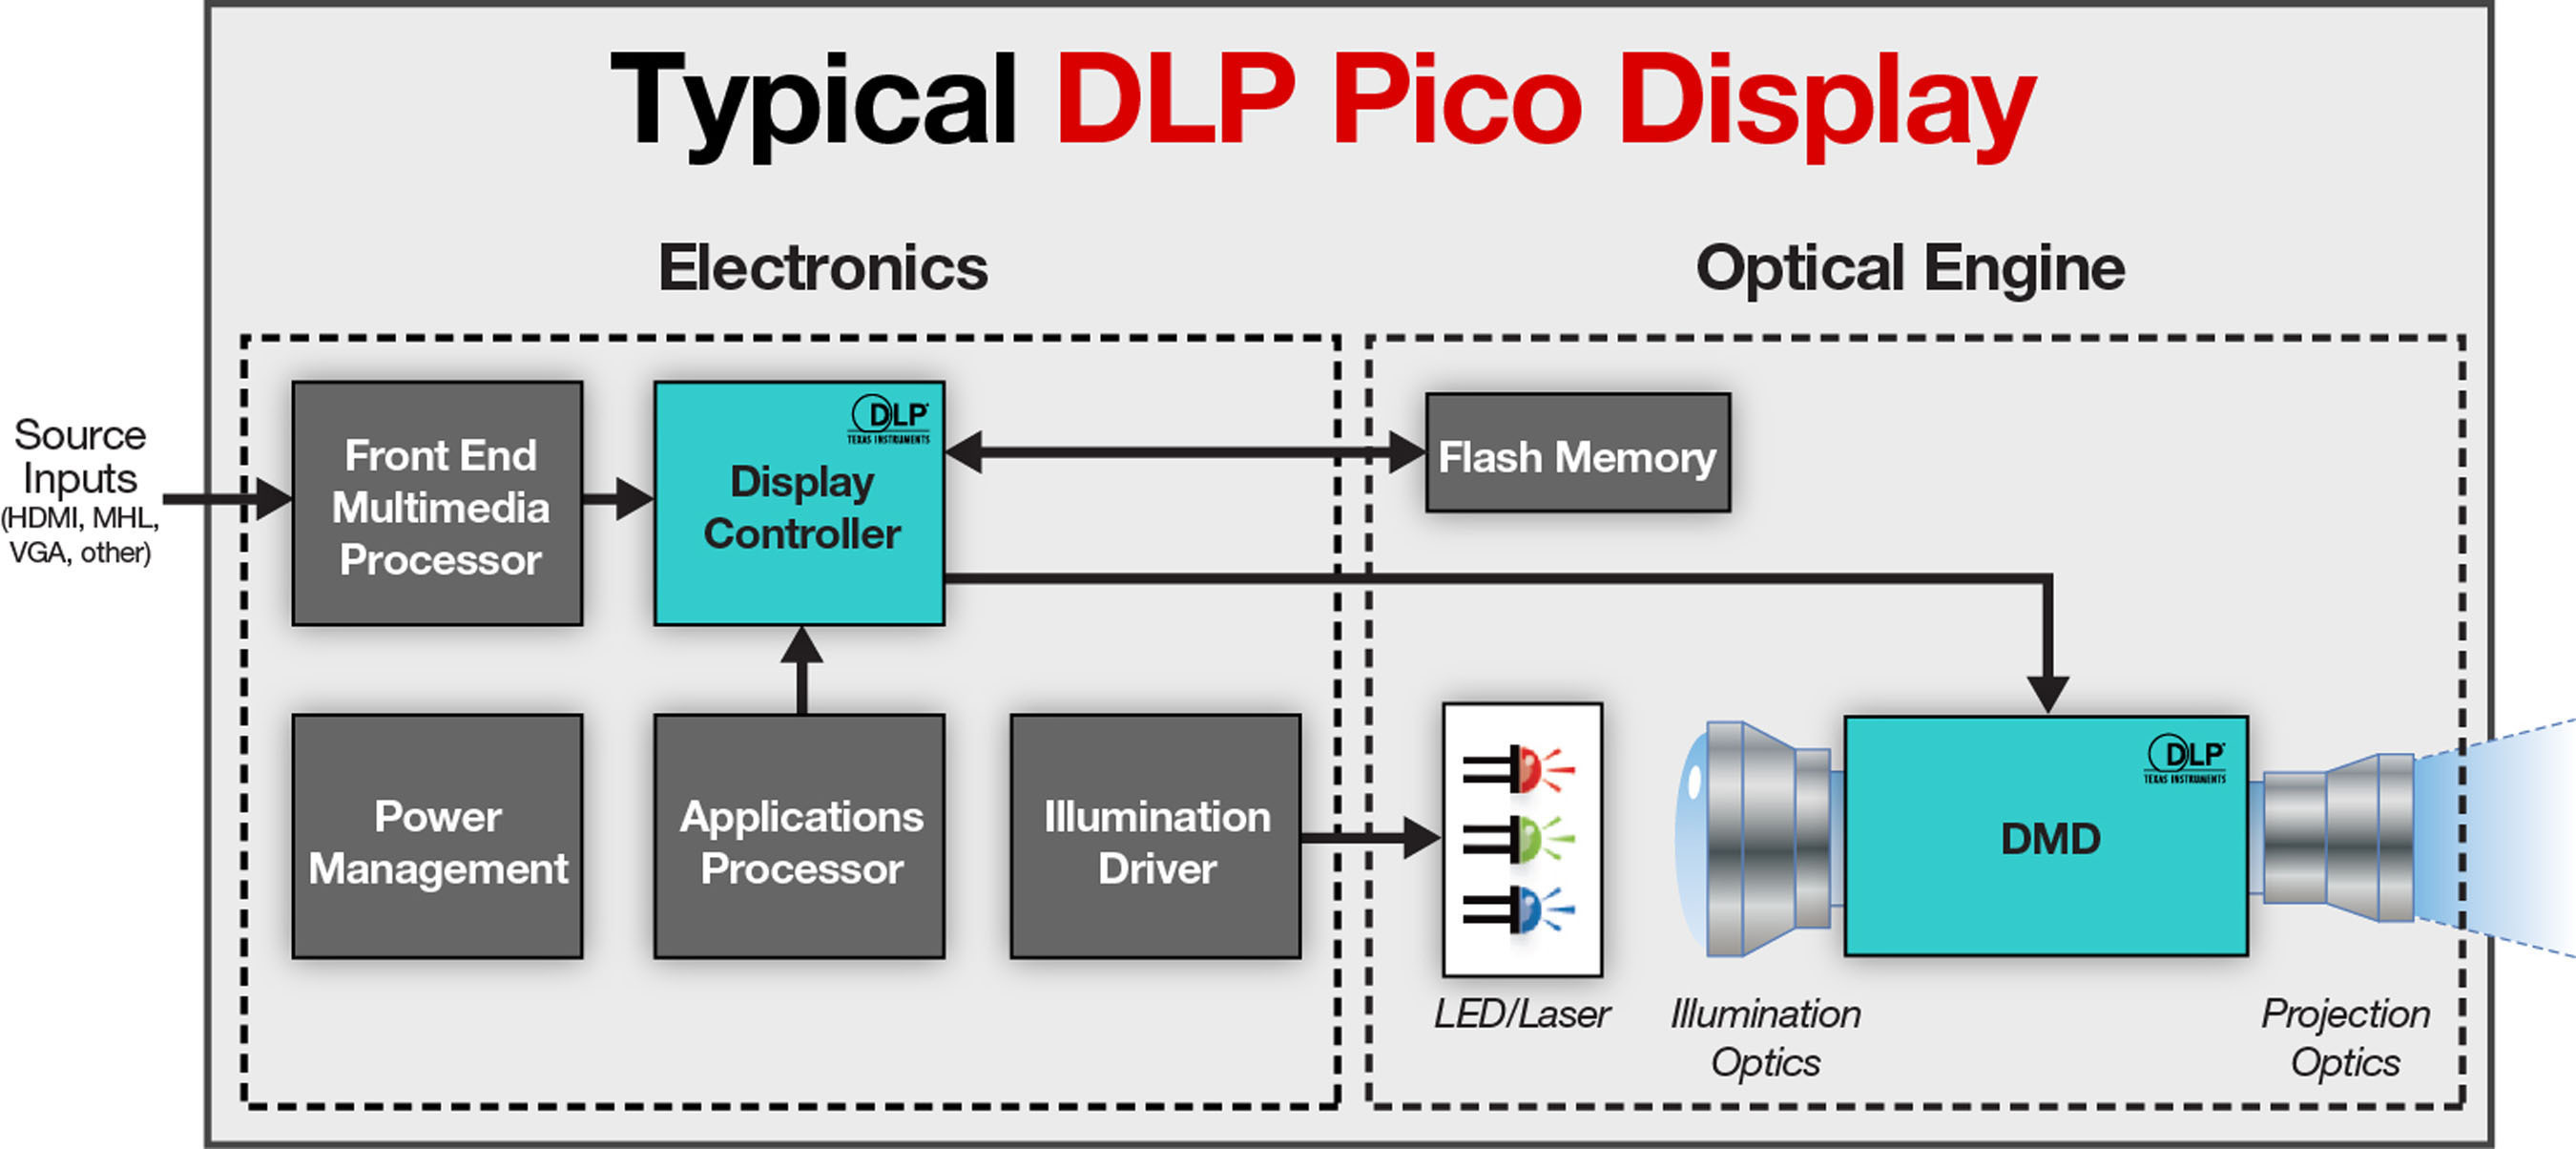 System Block Diagram For A Typical Texas Instruments DLP Pico(TM)-powered Display.  (PRNewsFoto/Texas ...